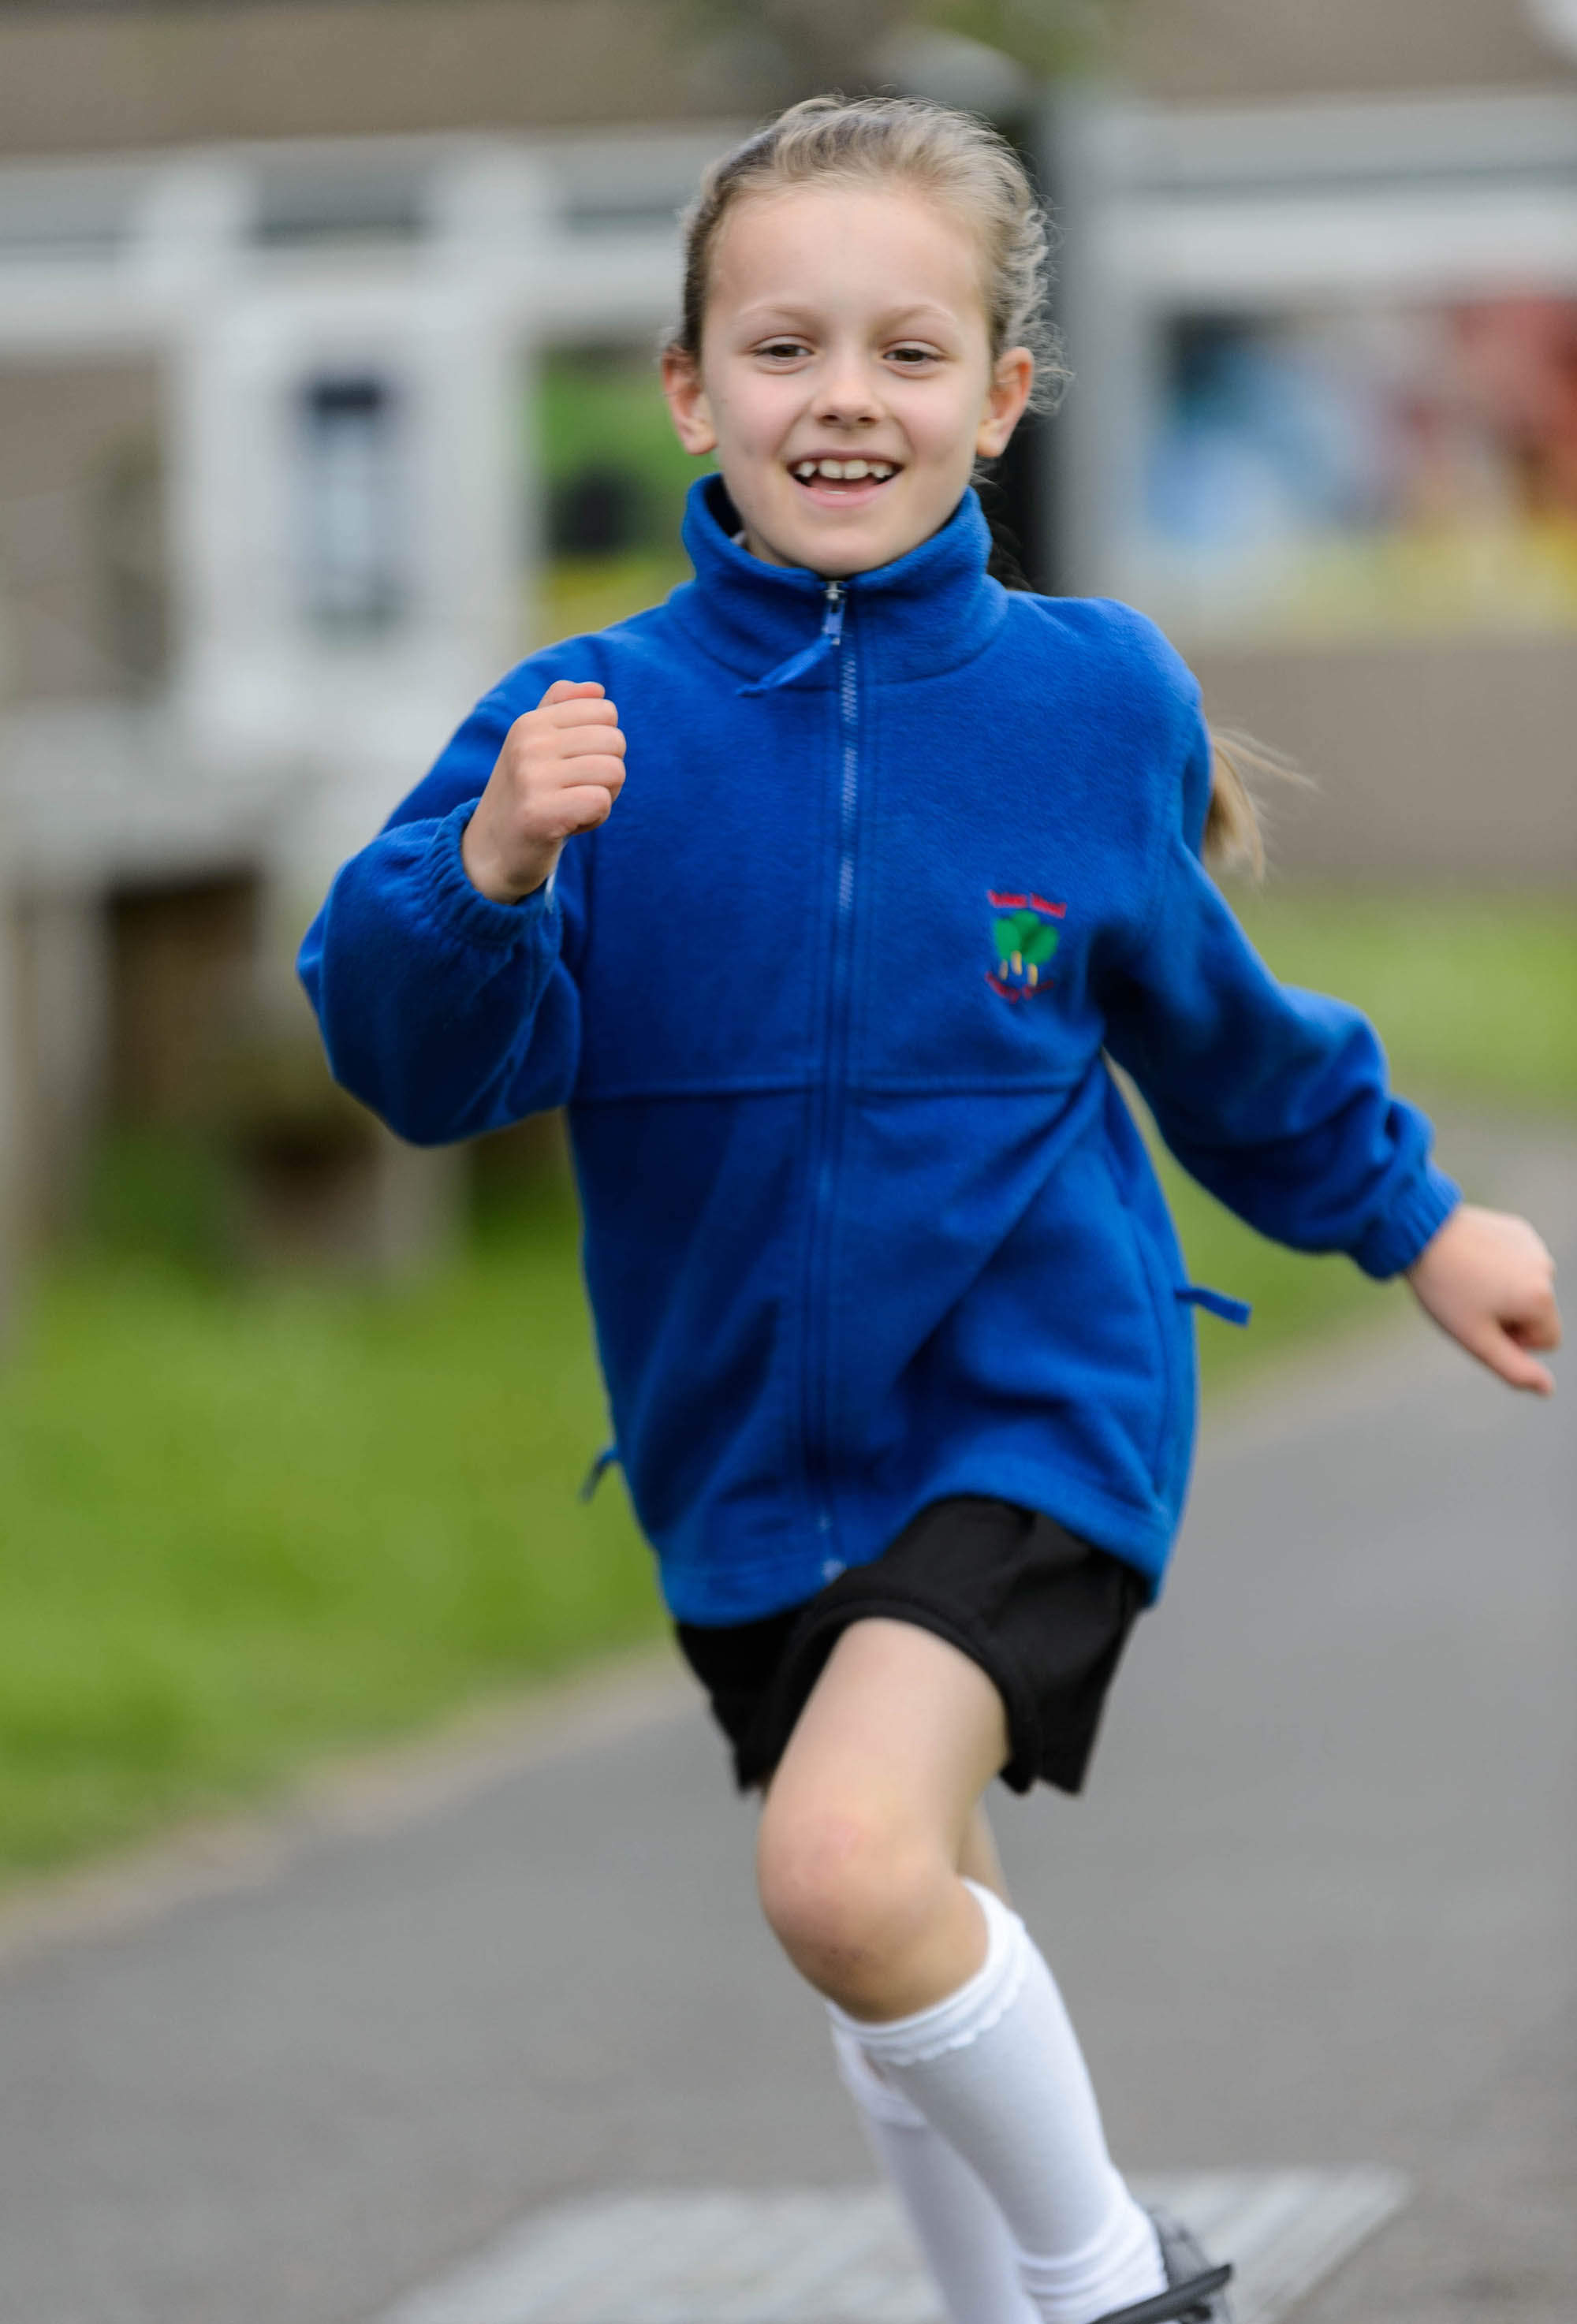 young girl running in school uniform